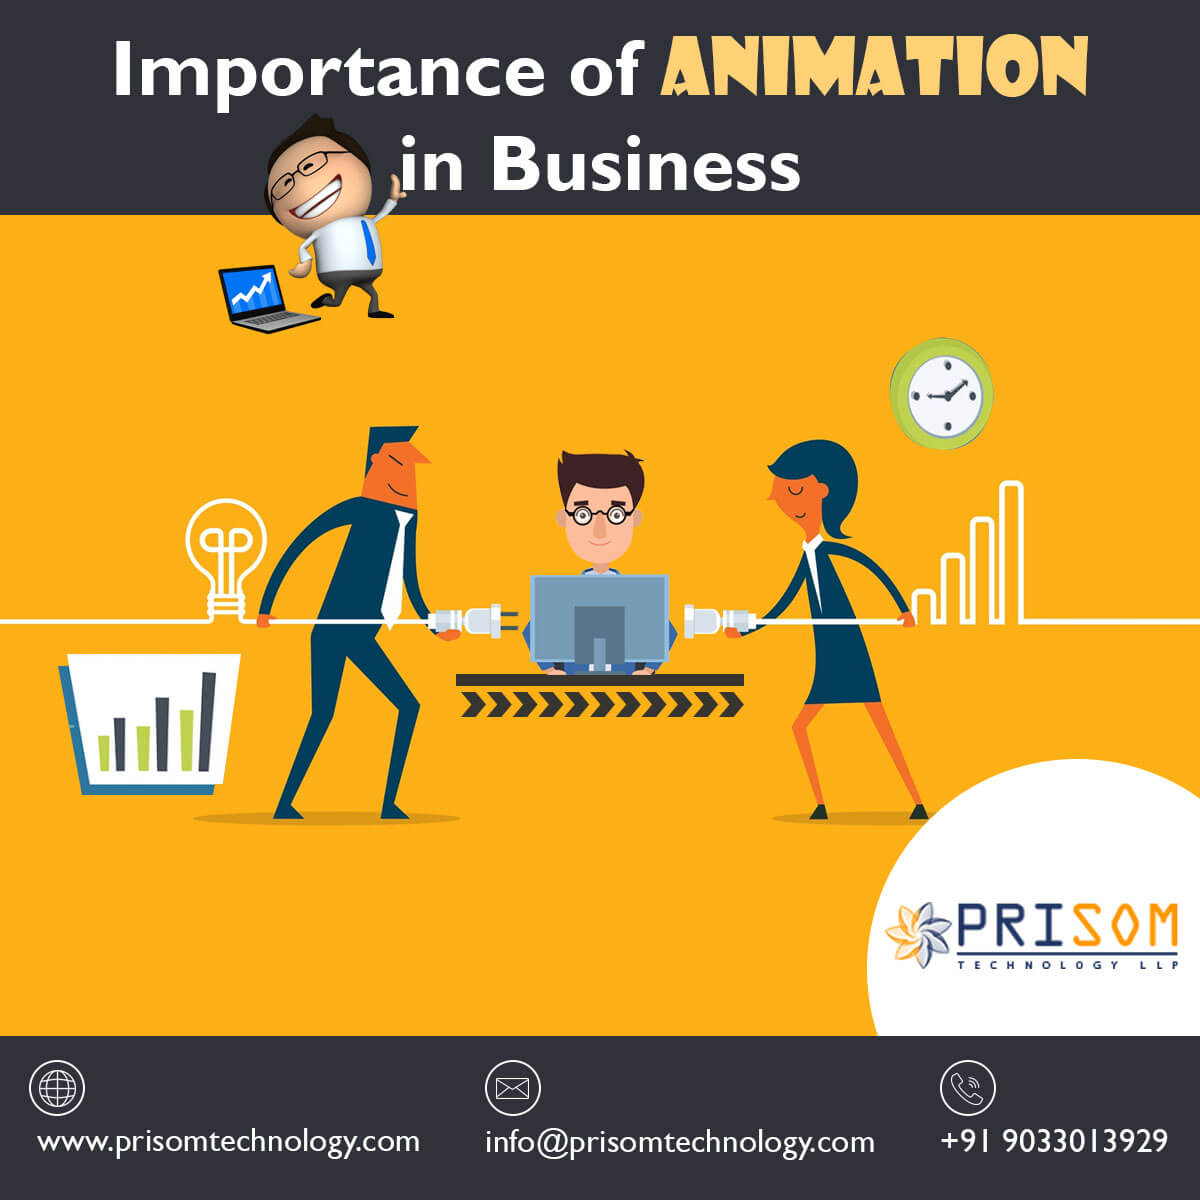 Importance of animation in business